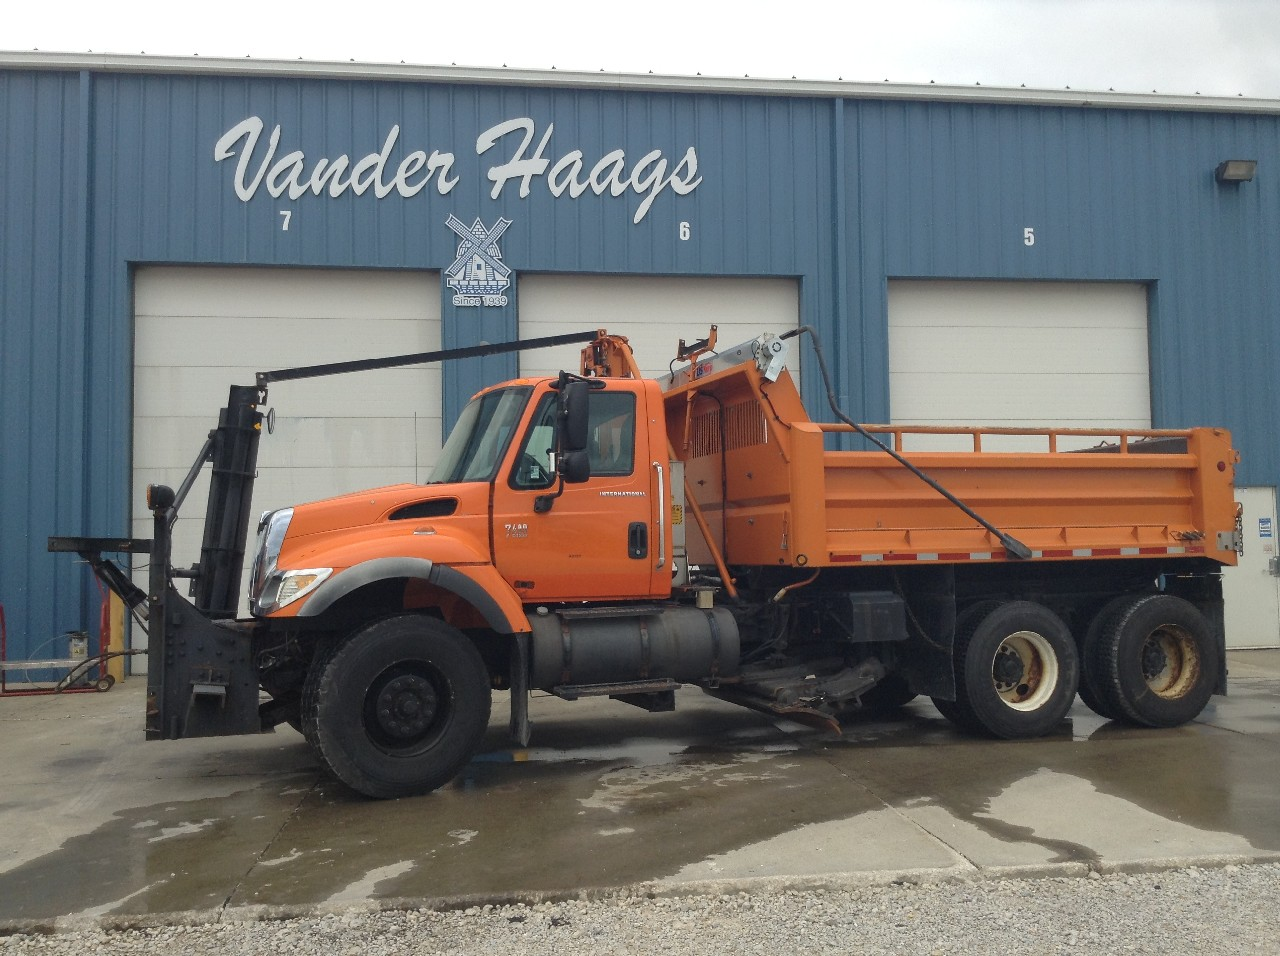 For Sale | VanderHaags com